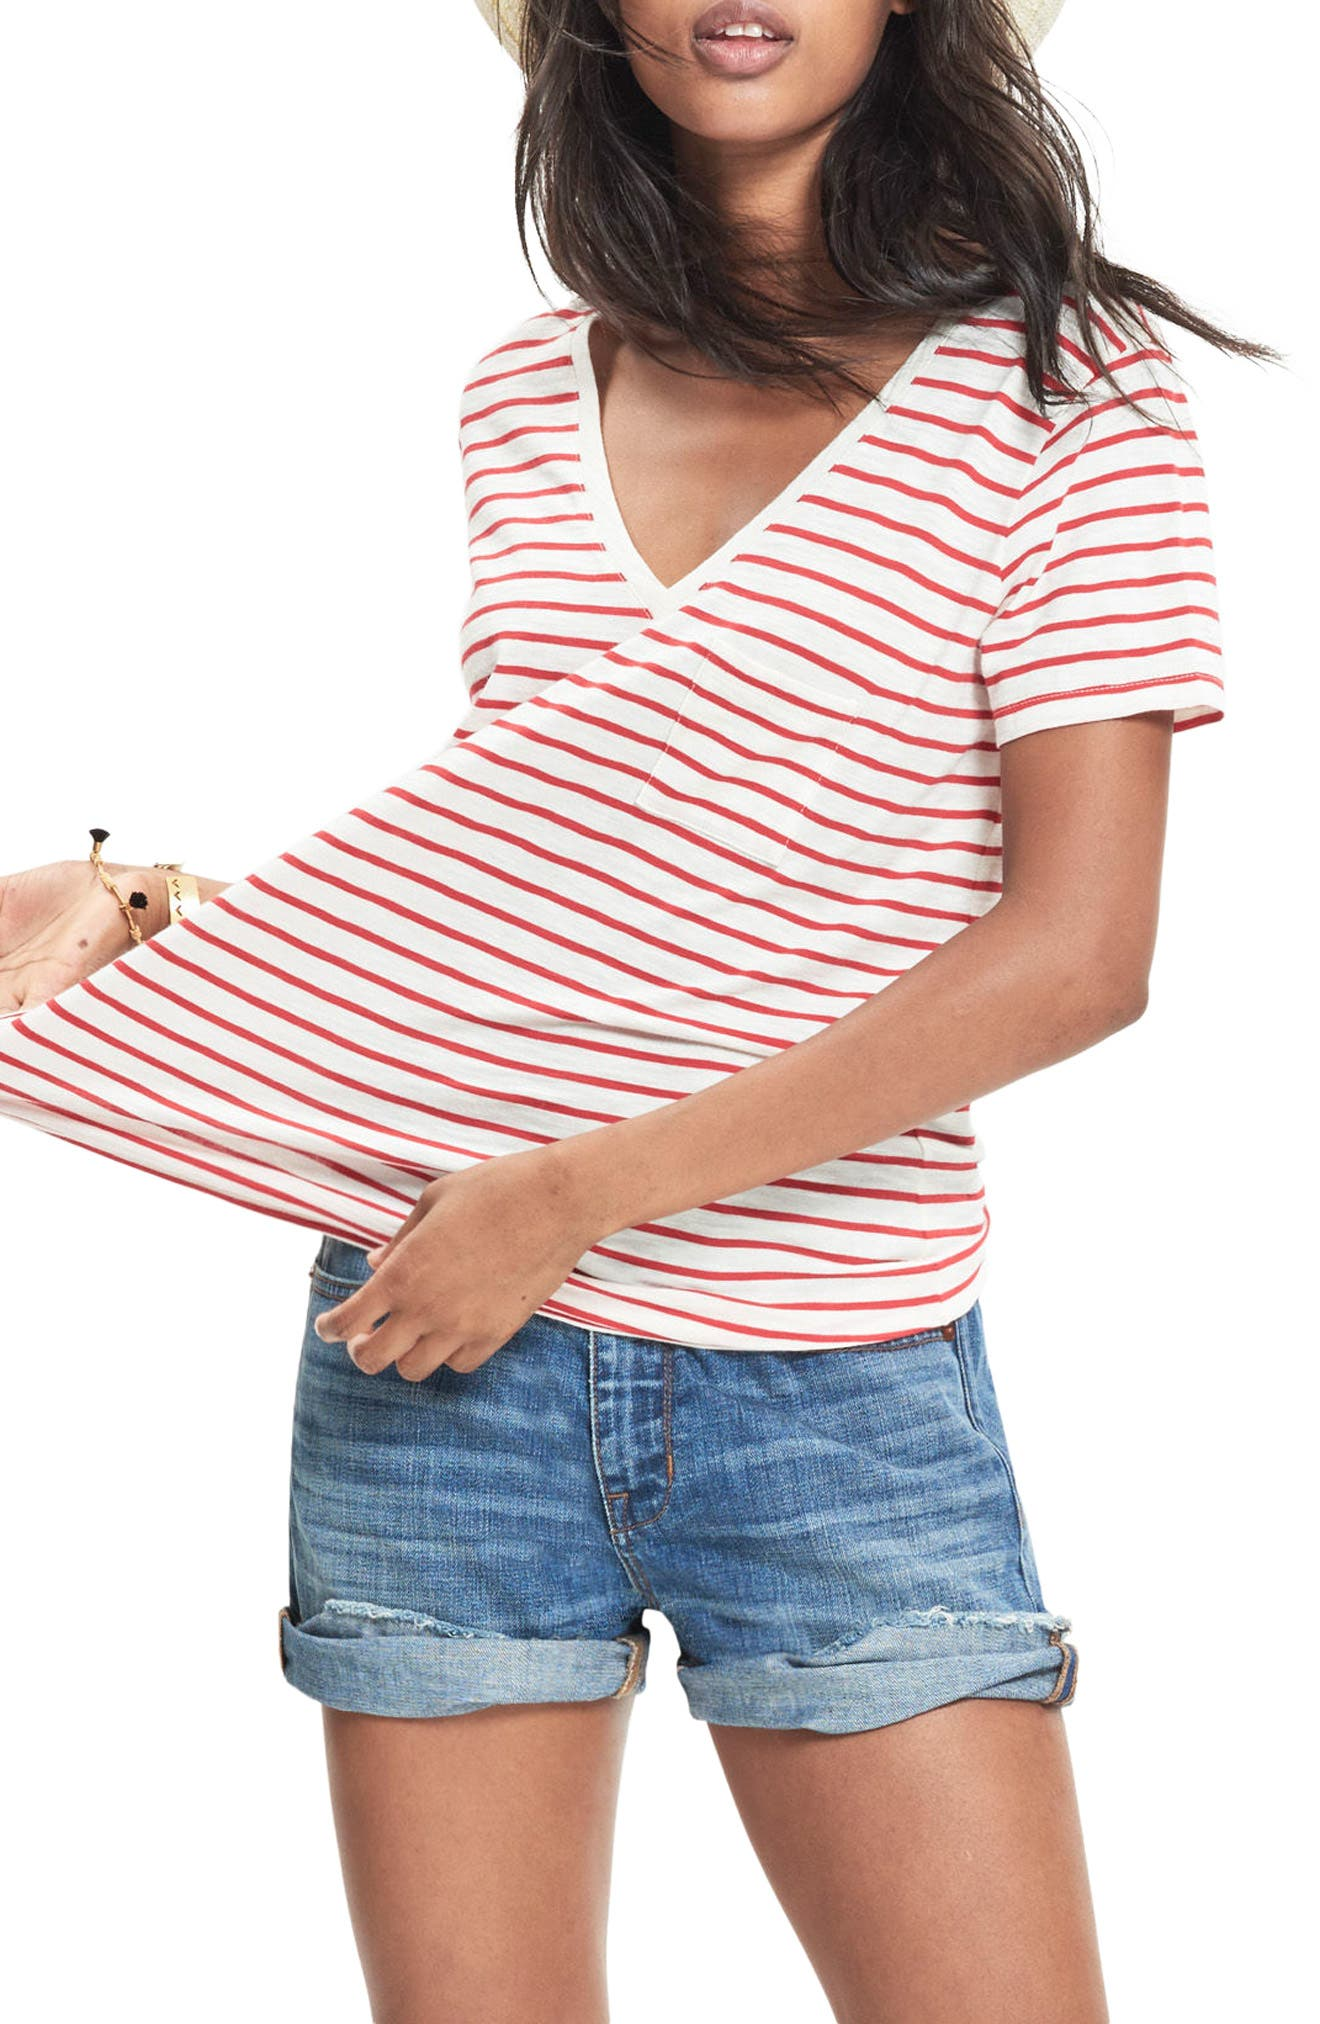 Alternate Image 1 Selected - Madewell Whisper Cotton Stripe V-Neck Tee